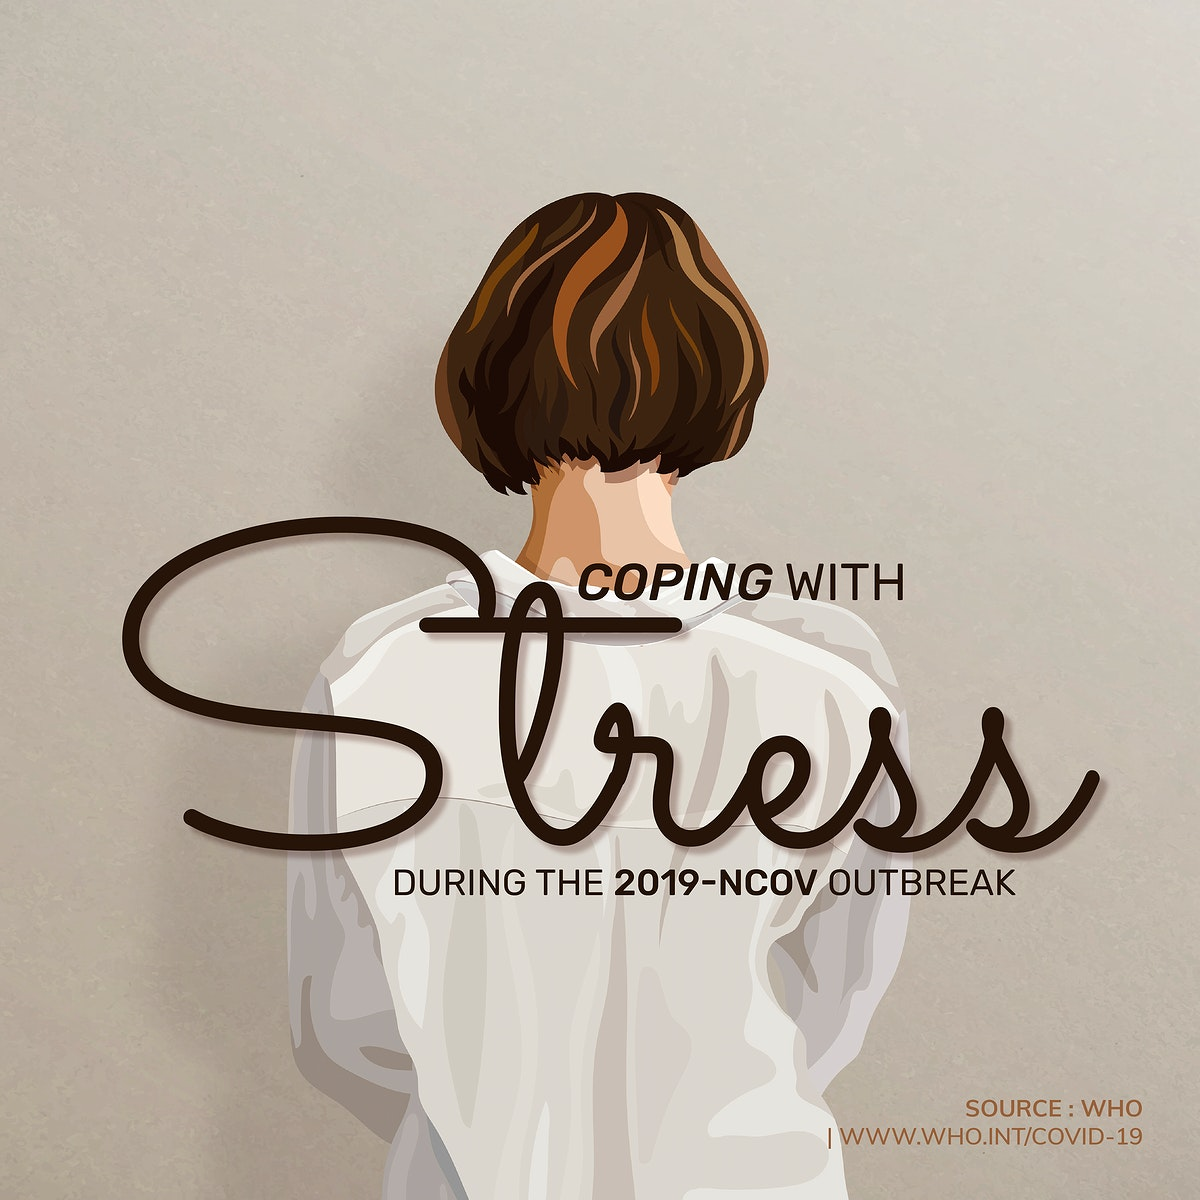 Coping with stress during the COVID-19 pandemic for mental health wellbeing illustration vector